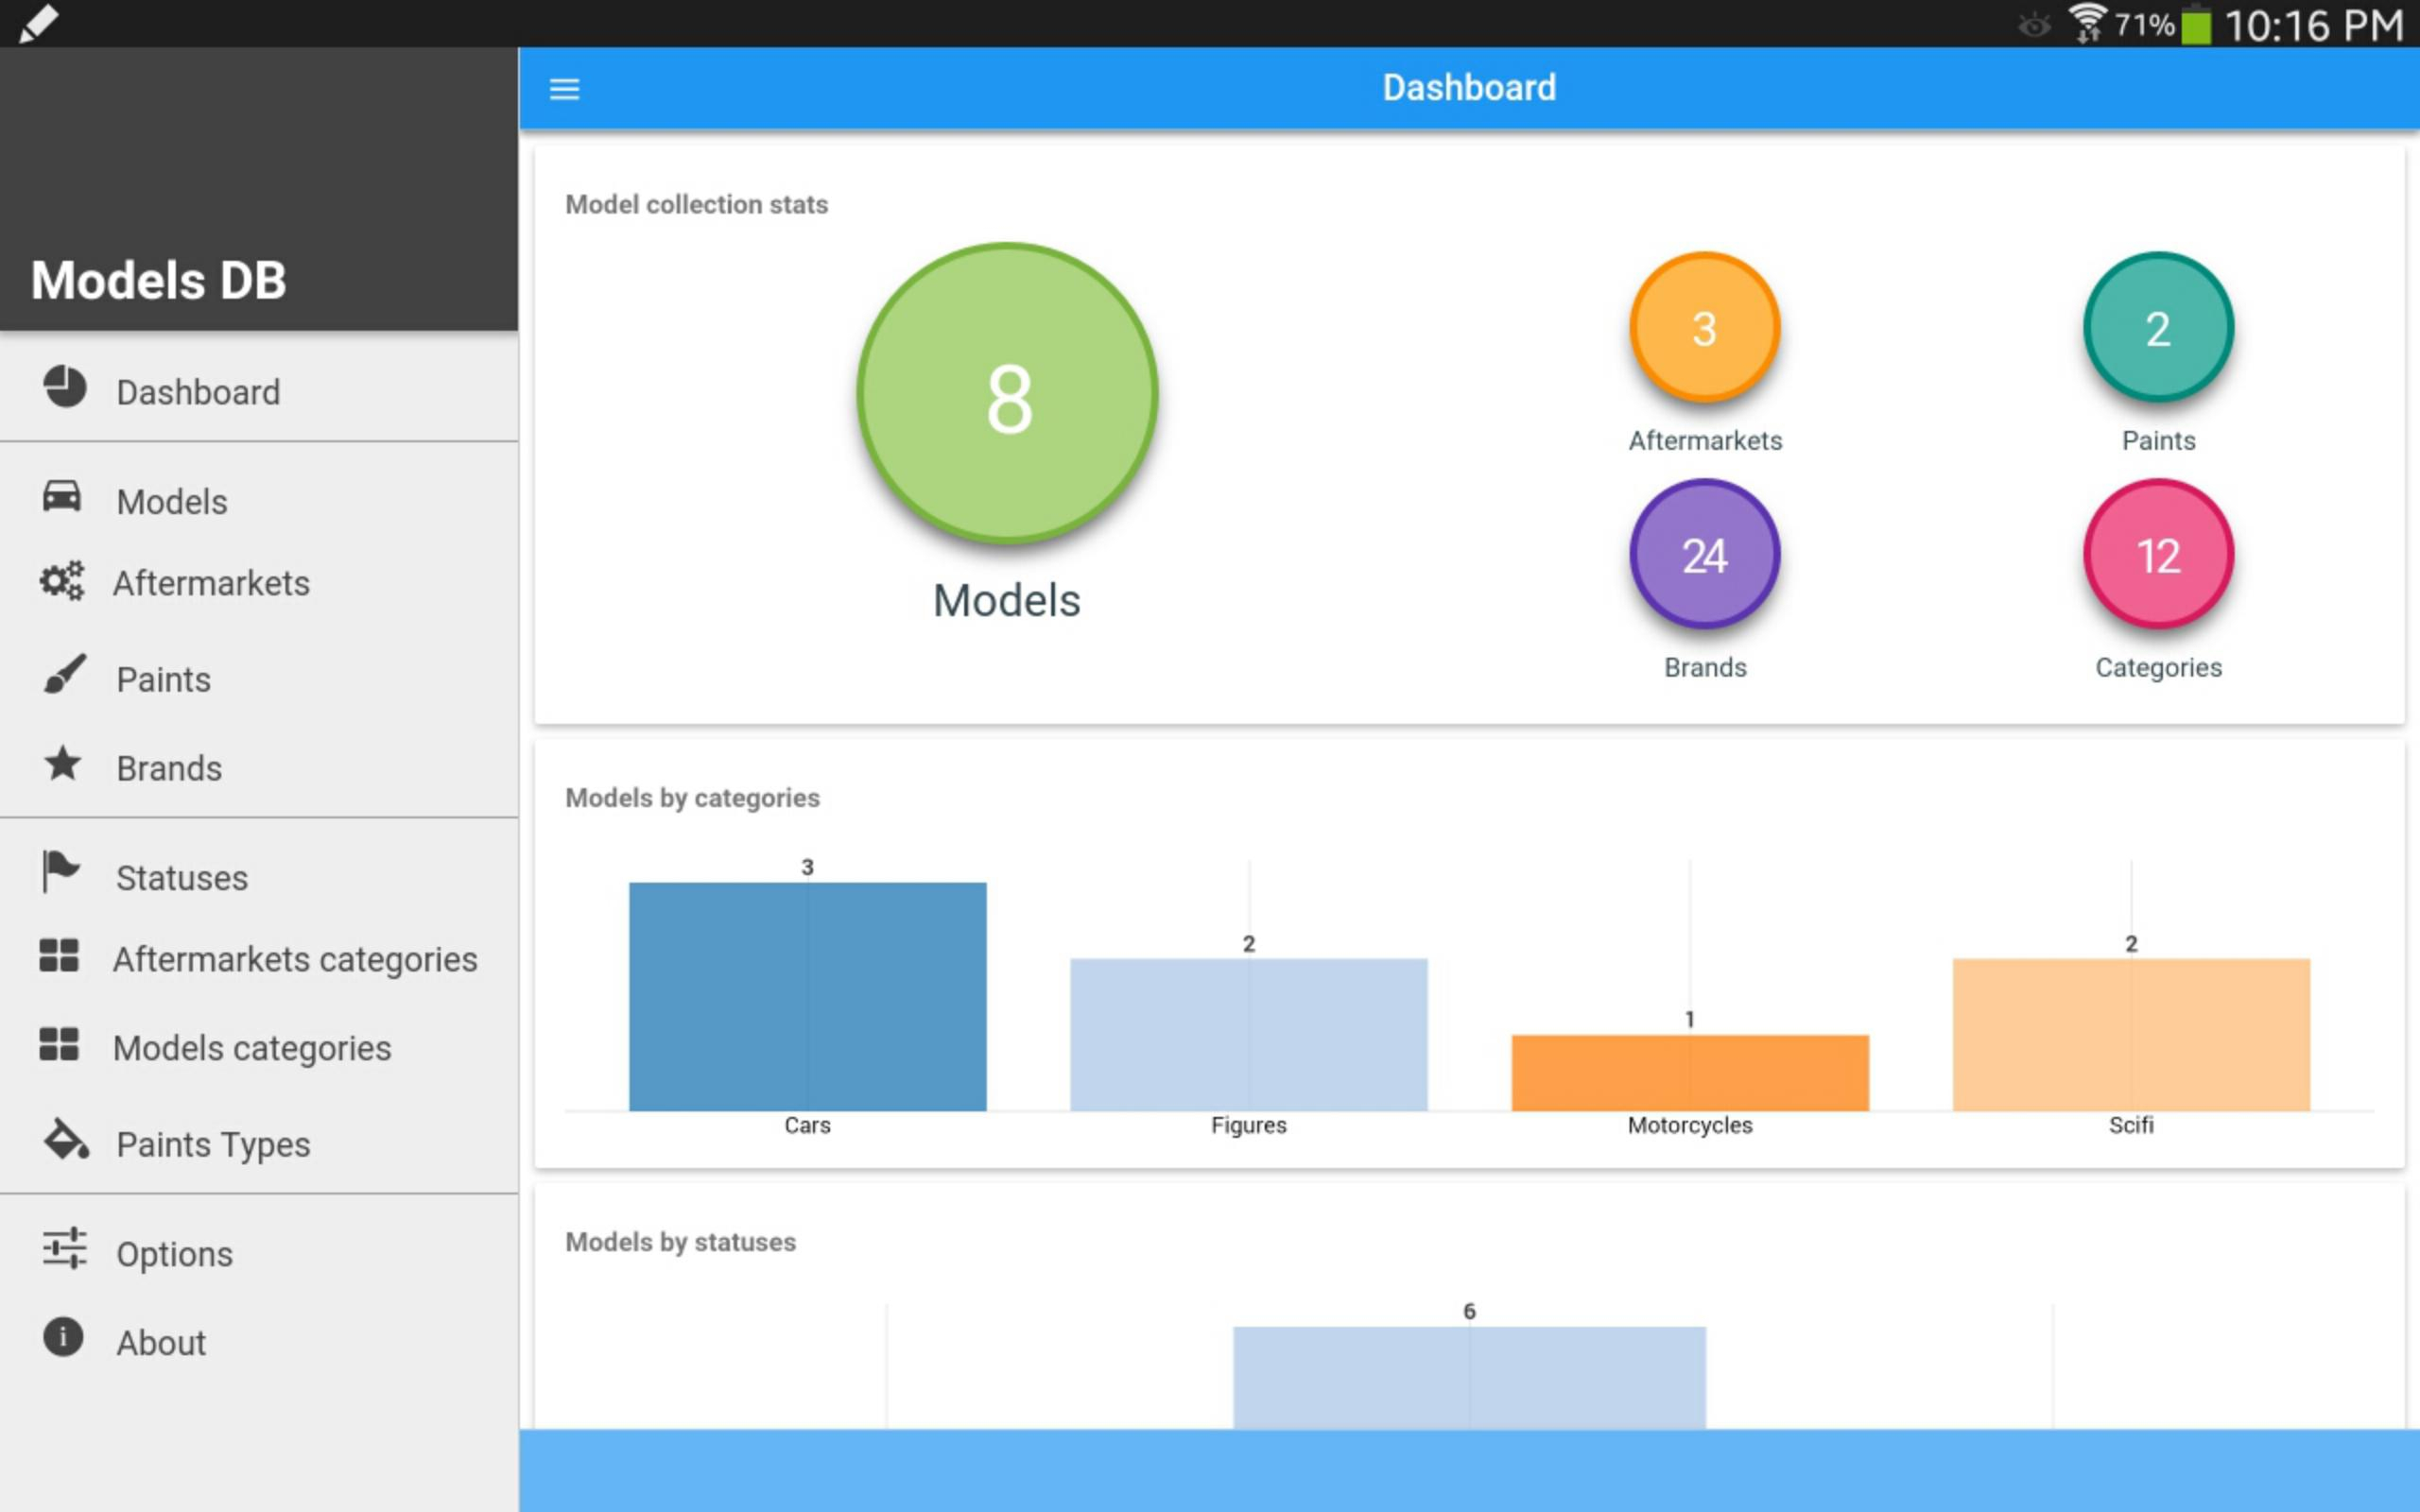 Scale Models Db Demo For Android - Apk Download intended for Db Models